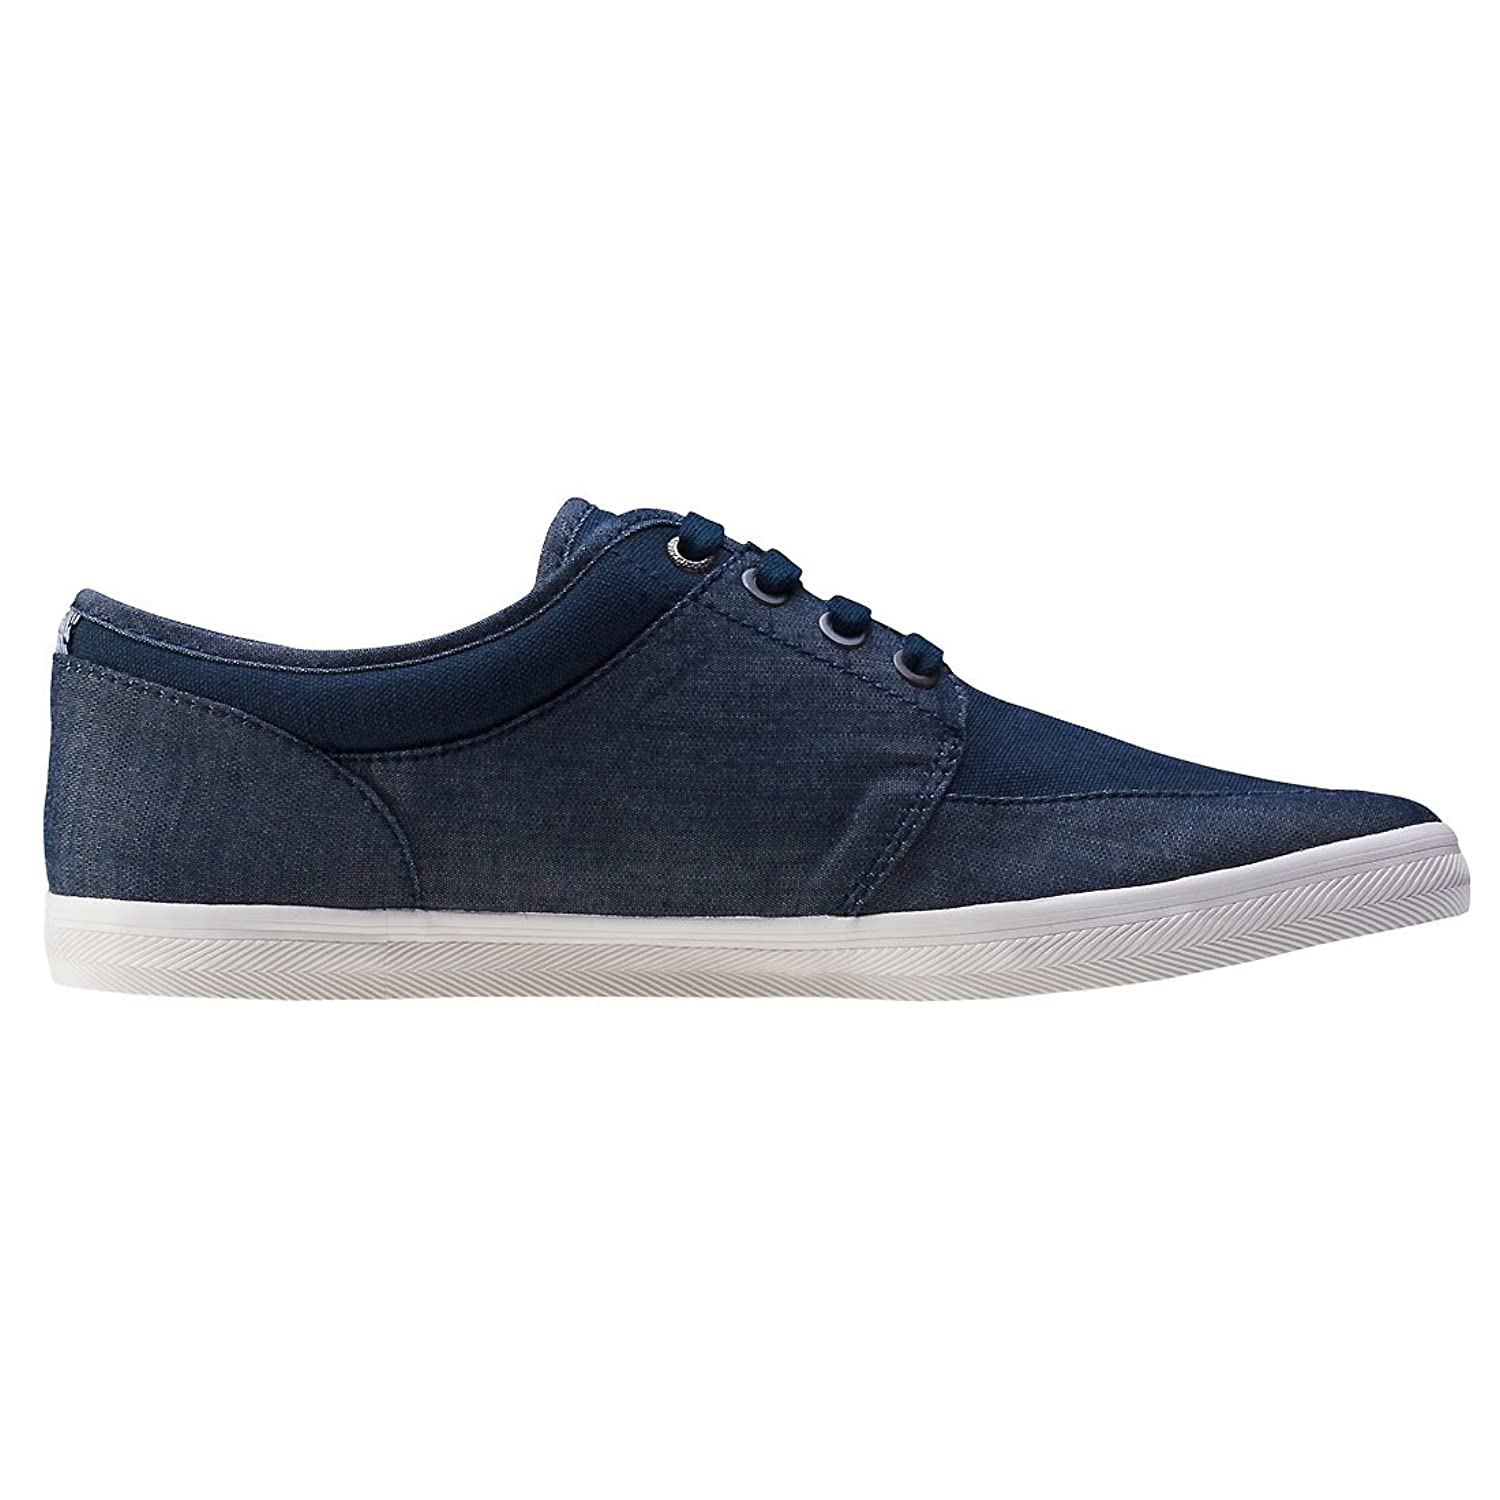 Fred Perry Stratford Chambray Canvas Navy B1170608, Deportivas - 43 EU